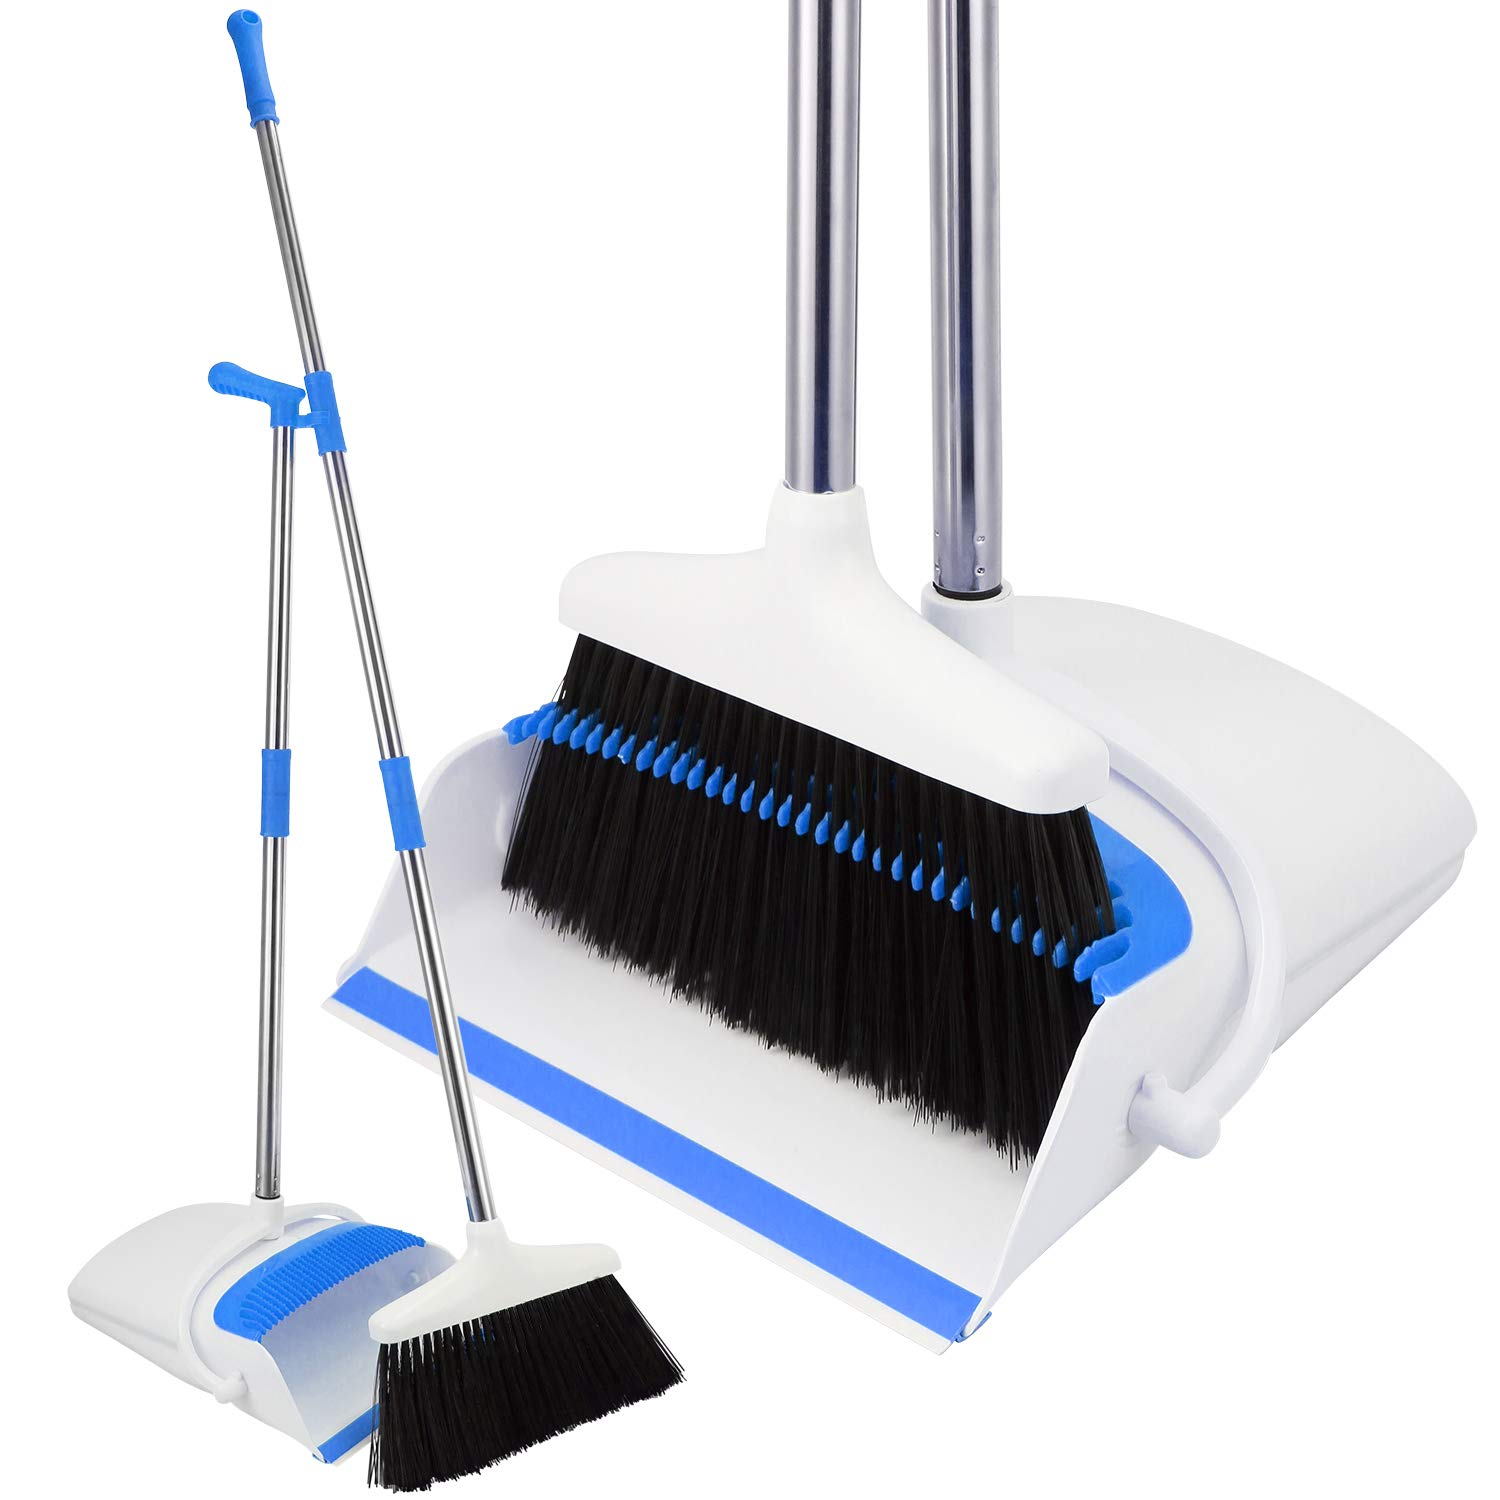 Broom and Dustpan Set - Strongest 30% Heavier Duty - Upright Standing Dust Pan with Extendable Broomstick for Easy Sweeping - Easy Assembly Great Use for Home, Office, Kitchen, Lobby Etc.- by Kray by Kray